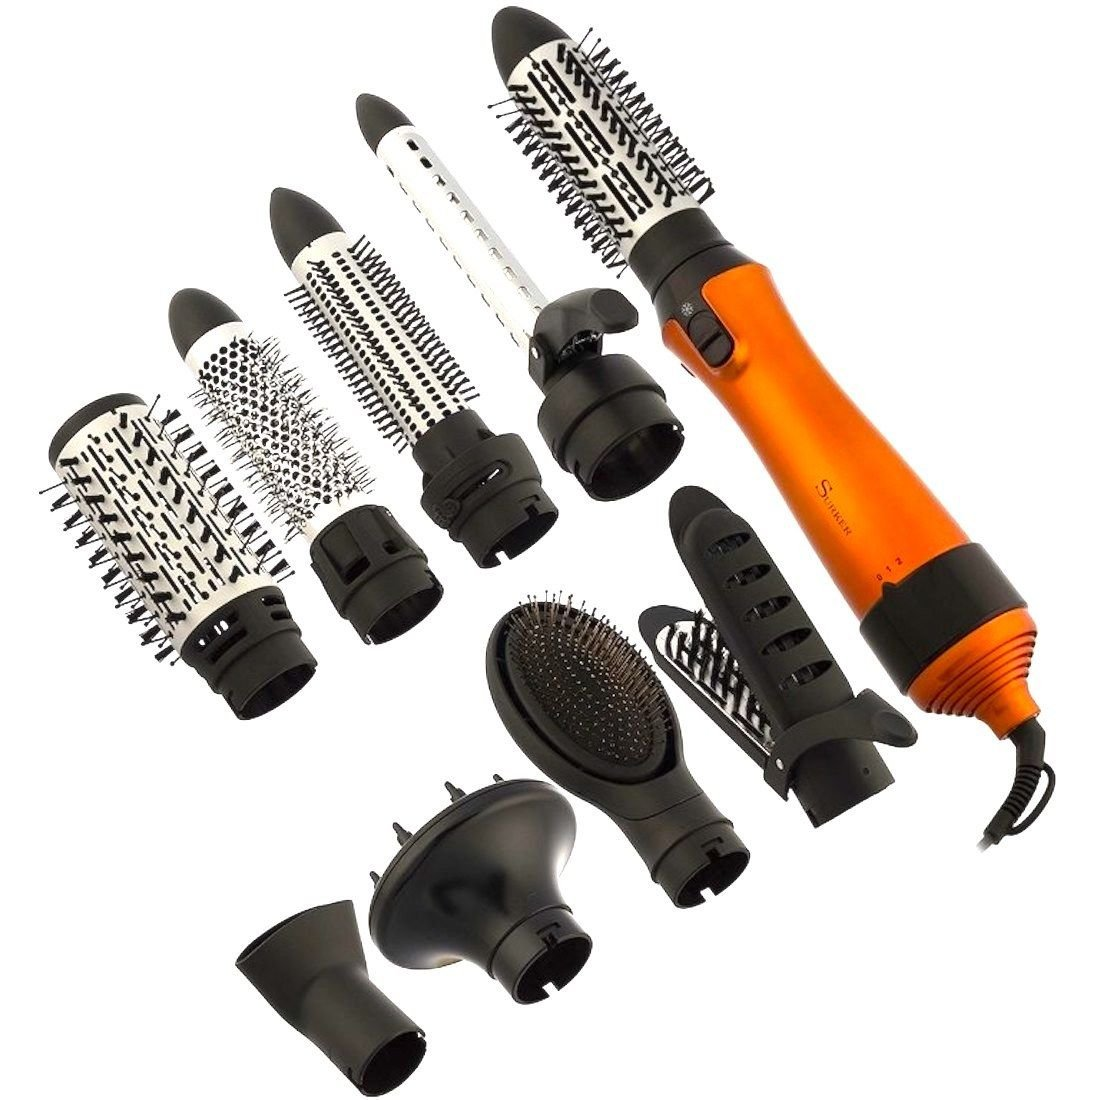 DOBO® Spazzola capelli aria calda con varie testine ed accessori hair styling 1000W - Kit completo hair styling